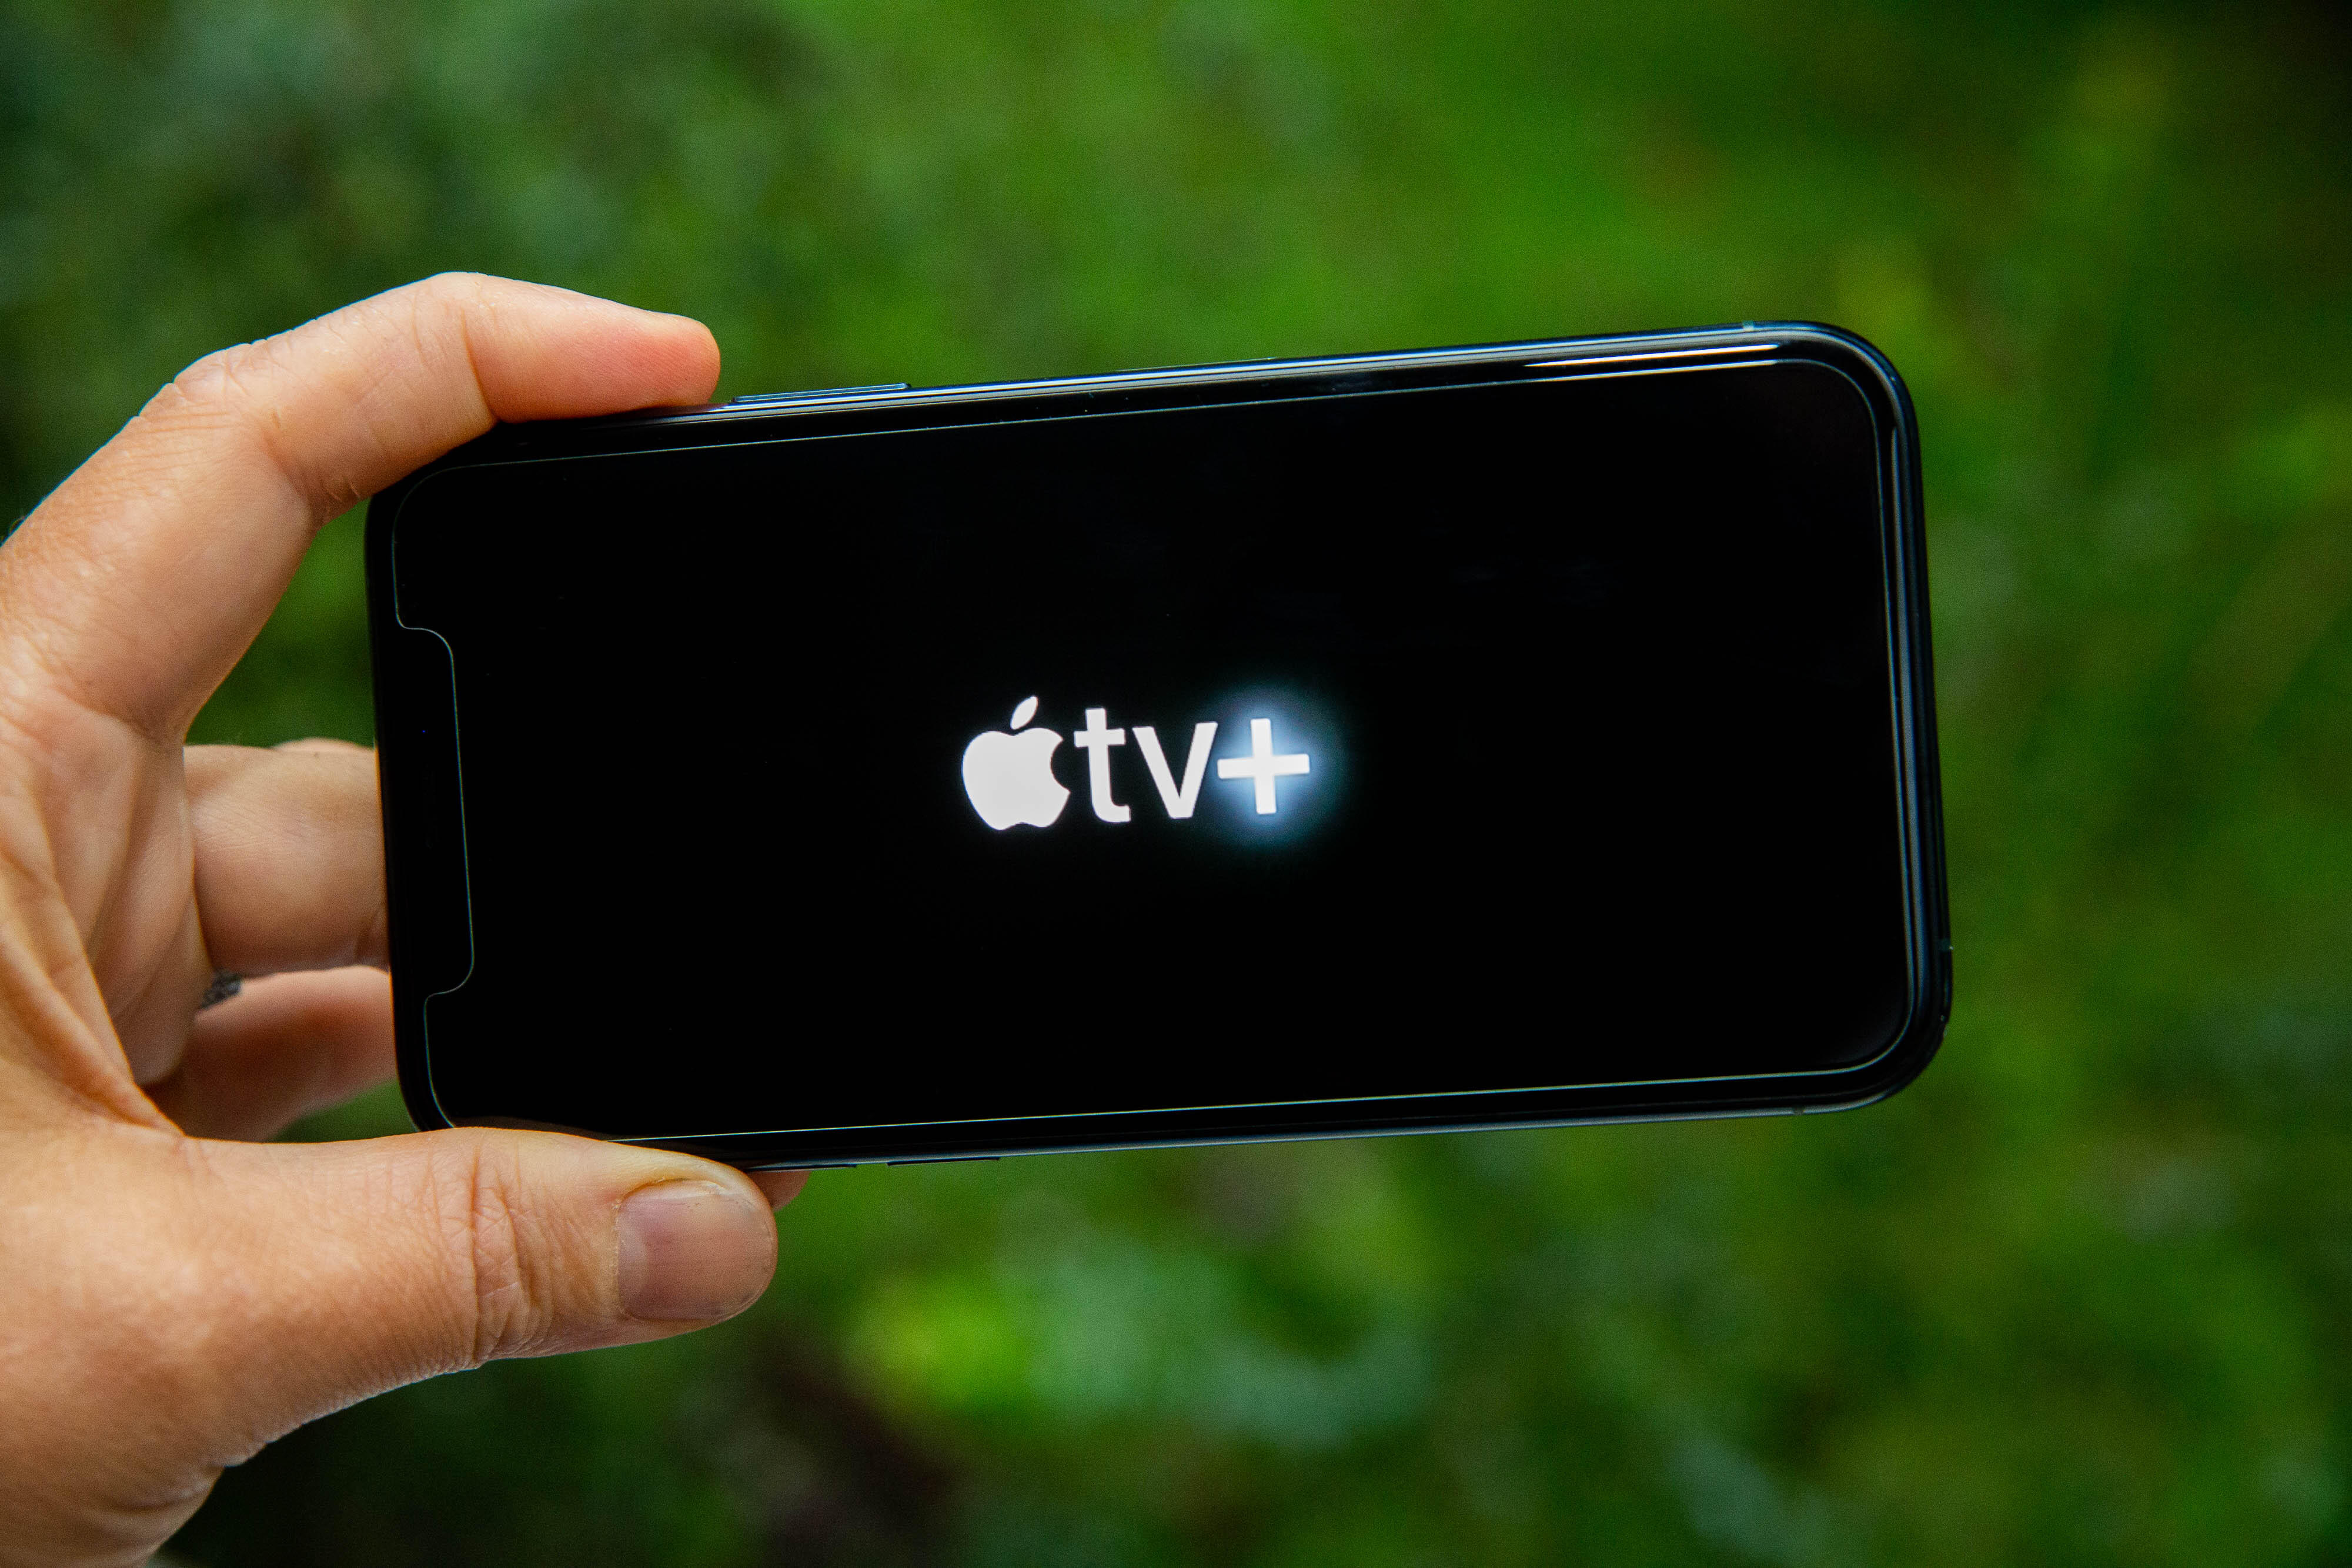 iPhone app: Apple TV+